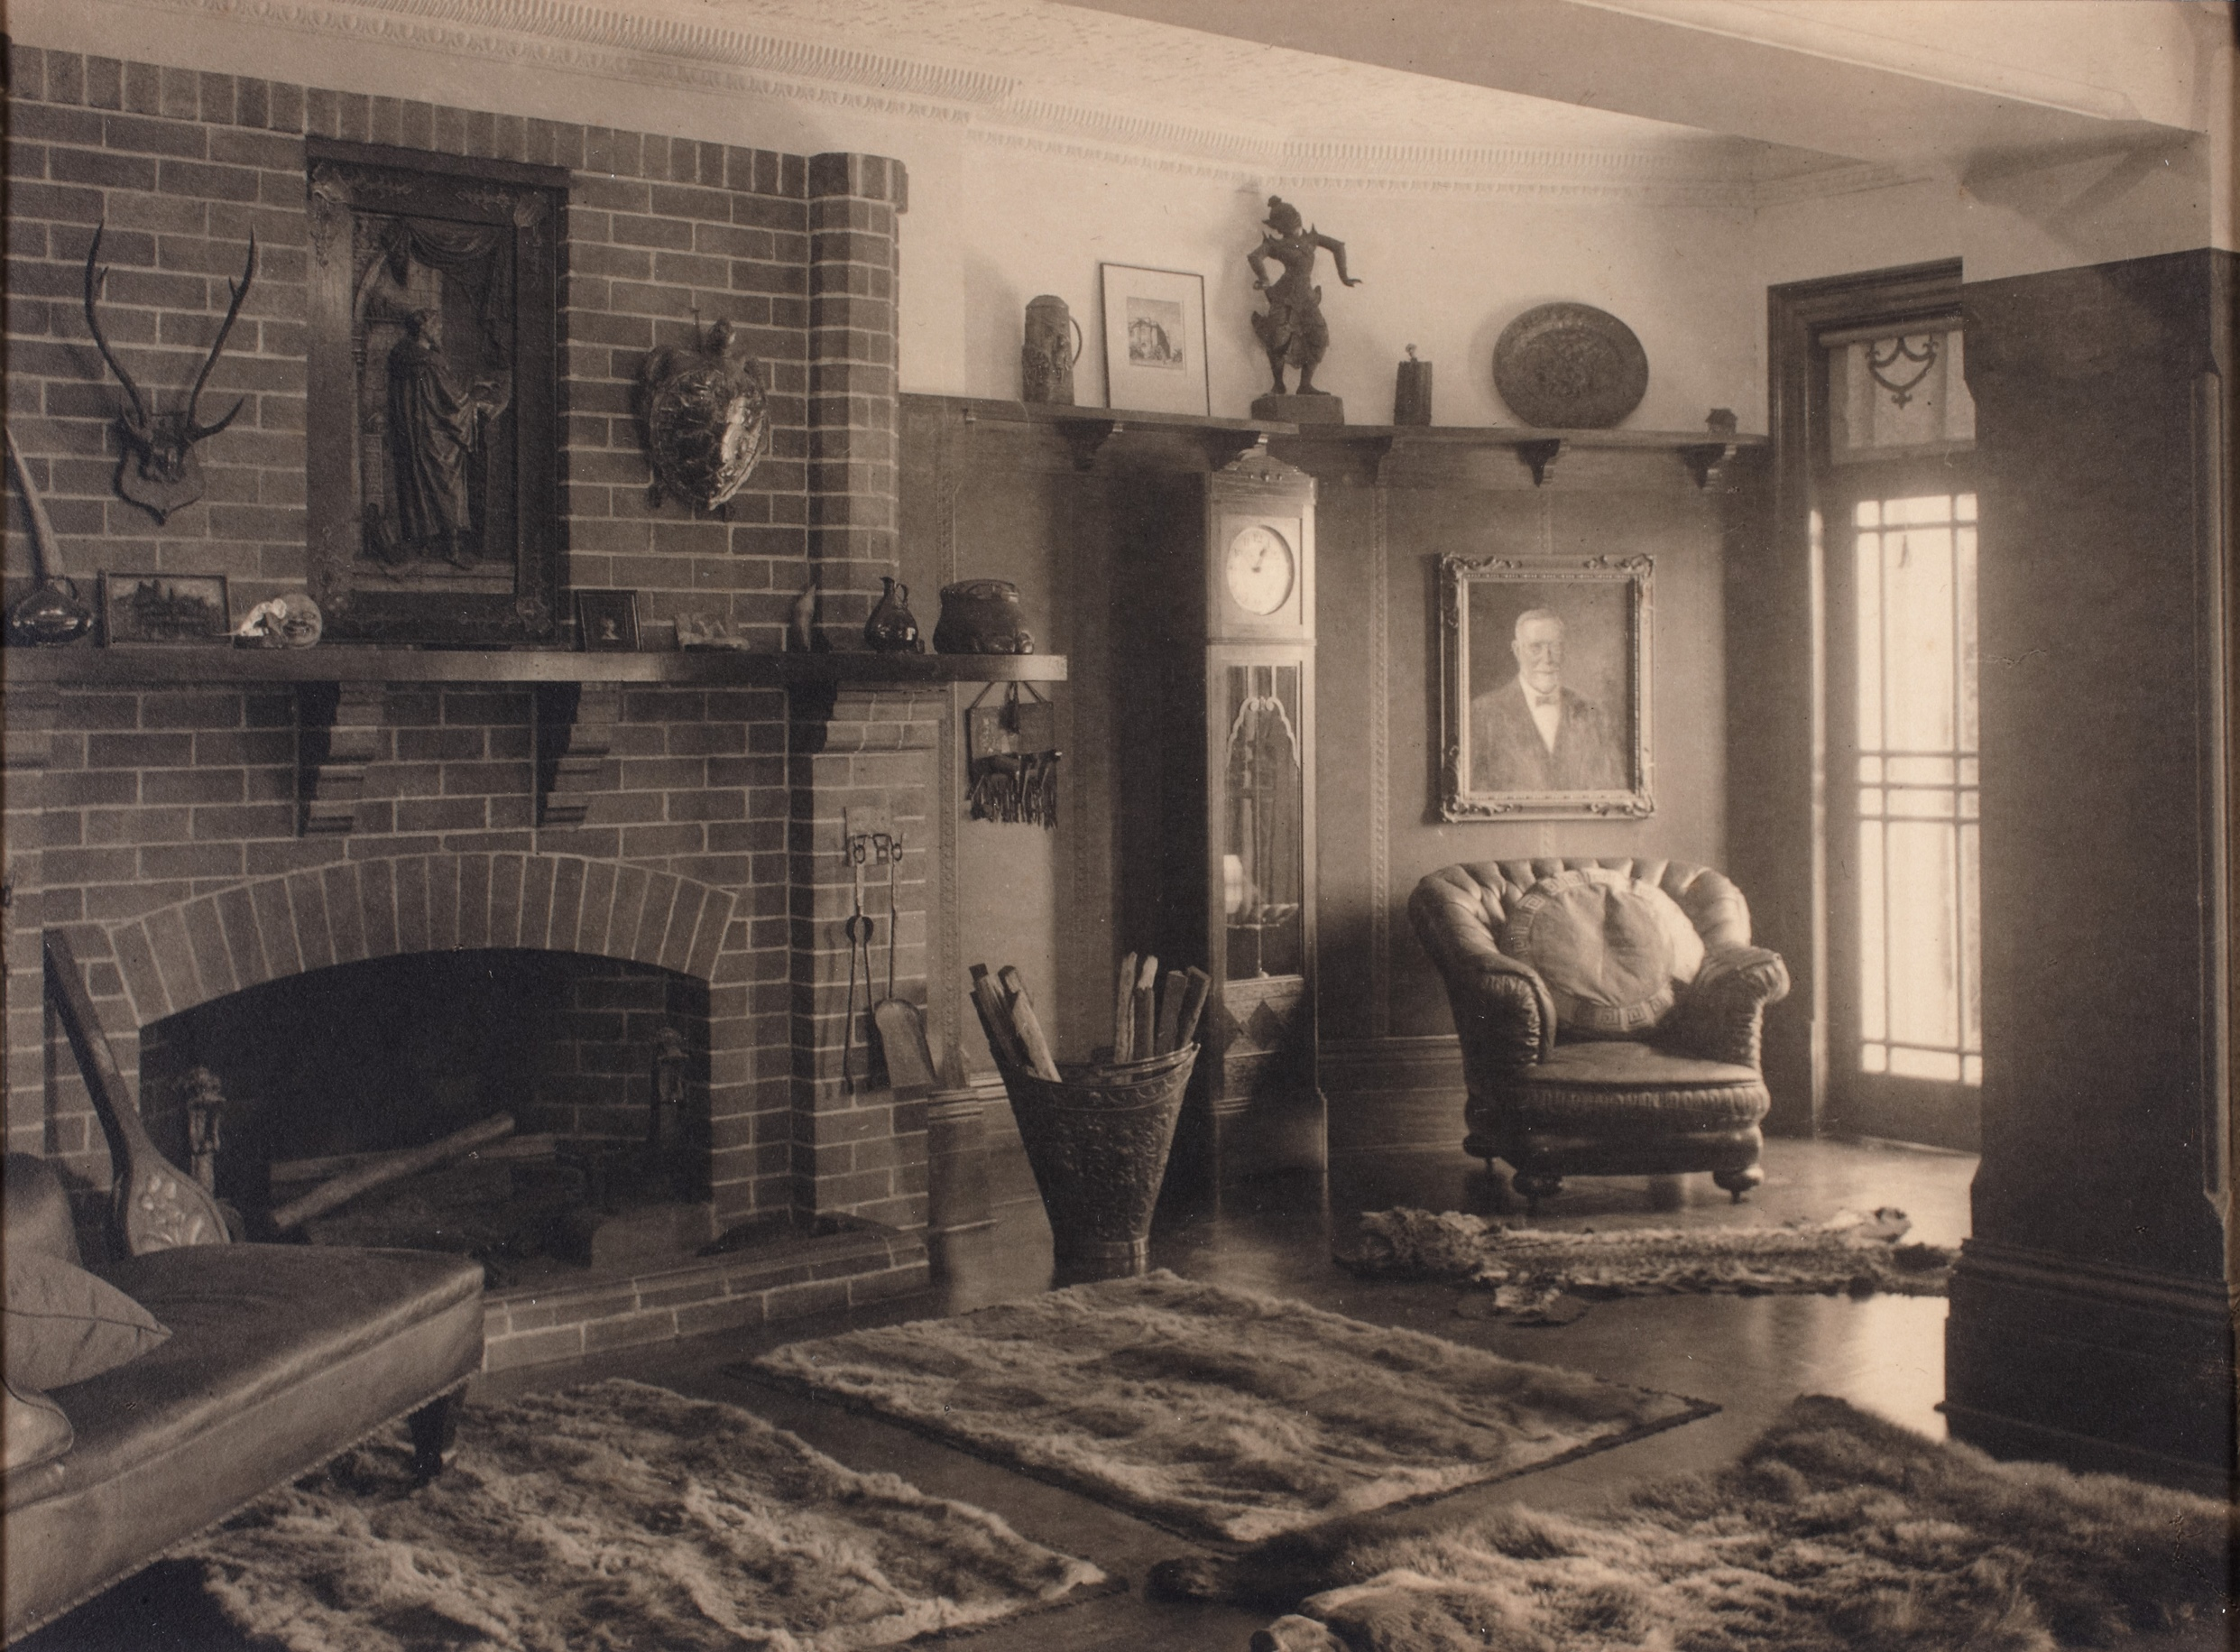 Fireplace at end of billiard room at Brooksby, Ocean Avenue, Double Bay, Sydney, New South Wales, 1922 / Harold Cazneaux